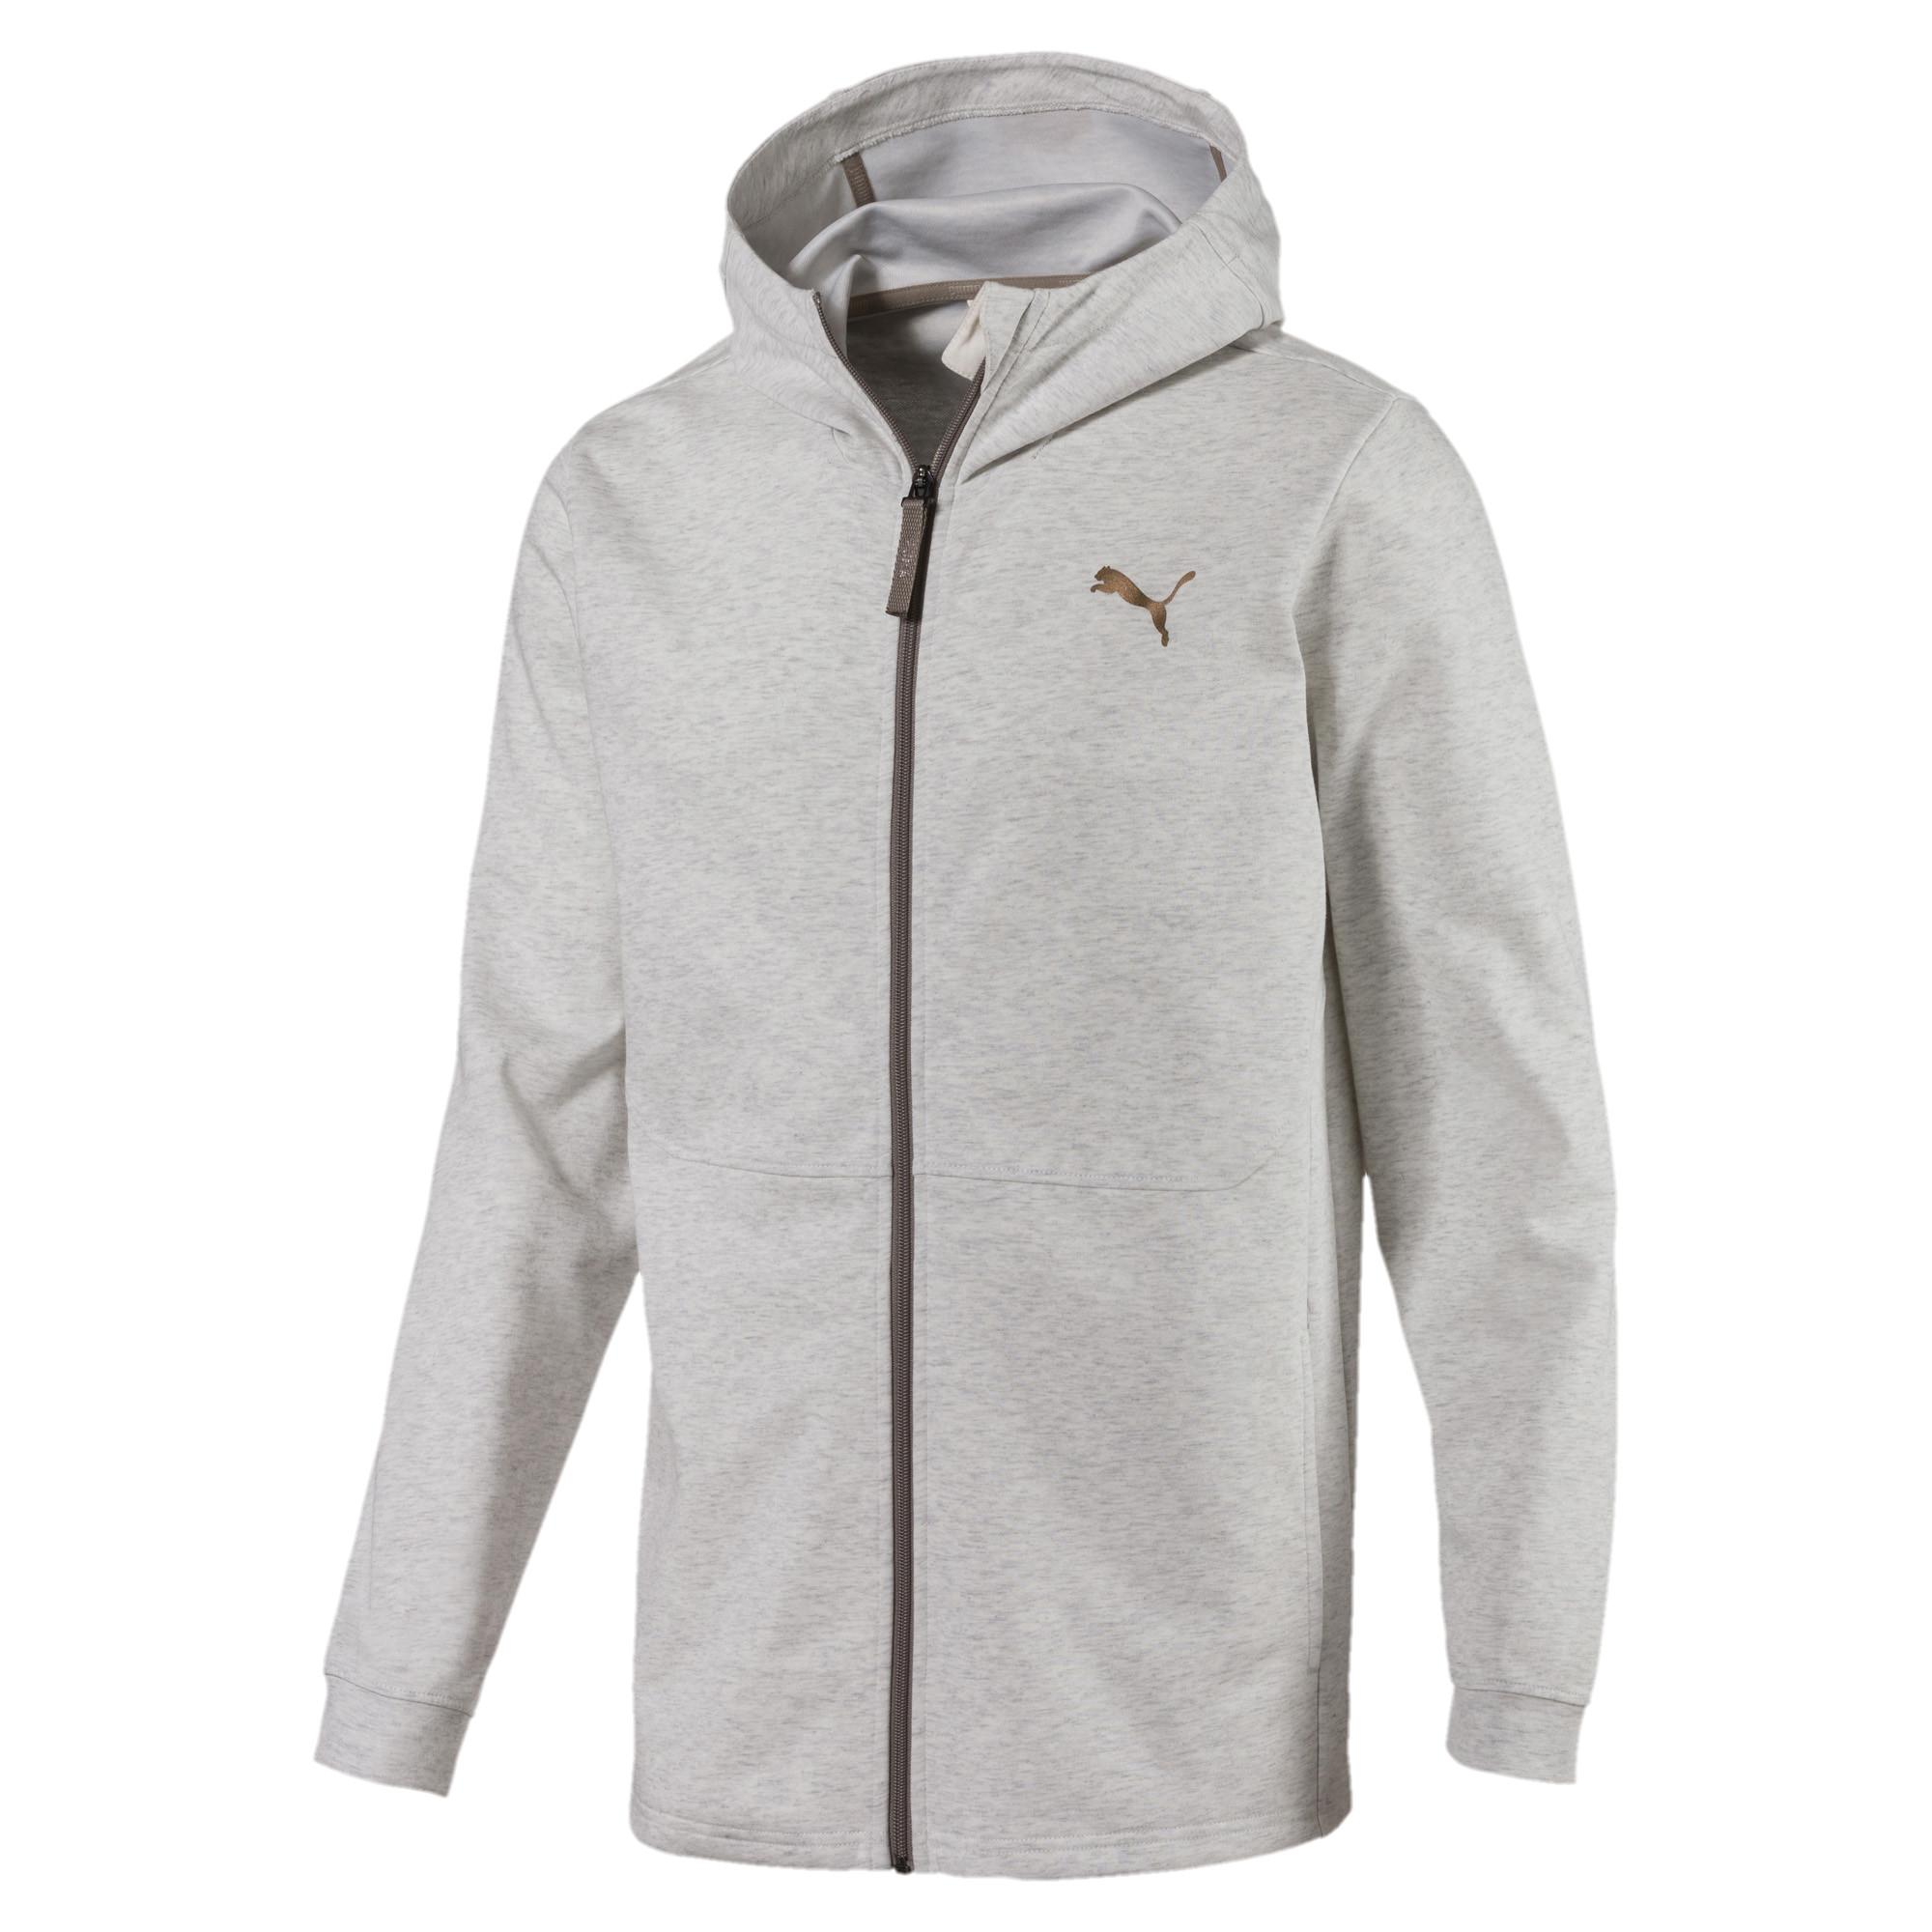 43c233d7a338 Lyst - PUMA Energy Desert Full-zip Men s Jacket in Gray